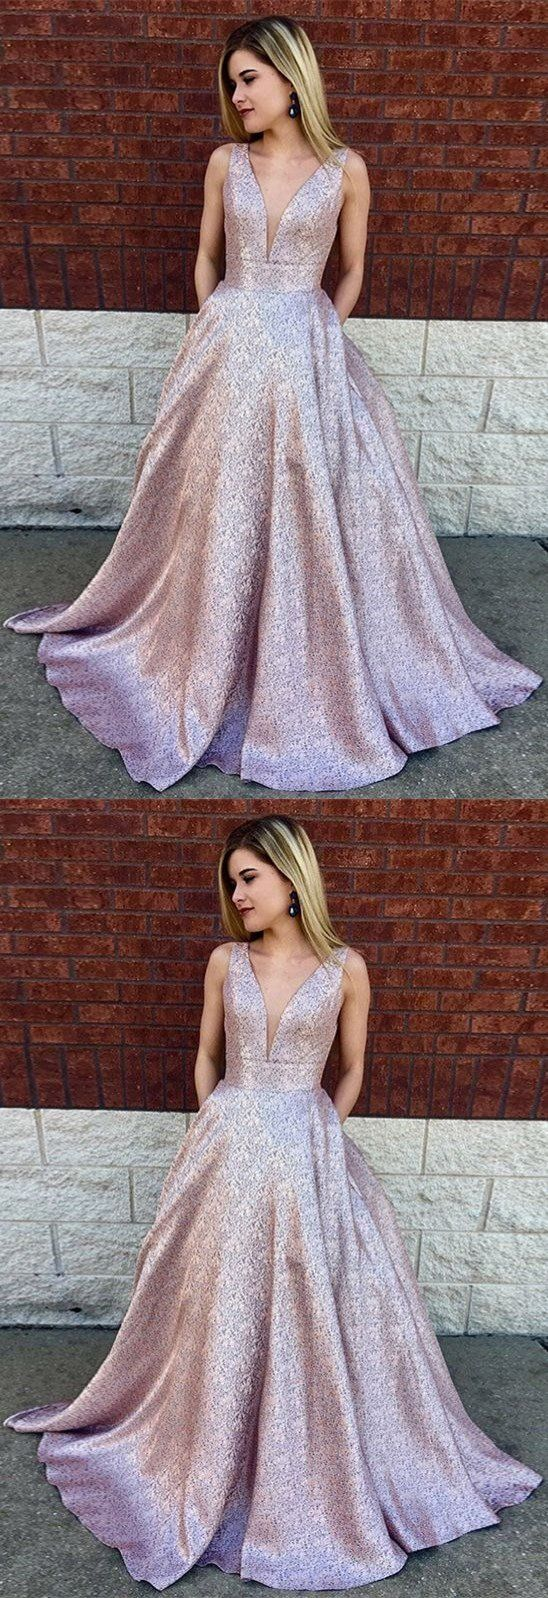 Deep vneck aline long lilac printed satin prom dress with pockets